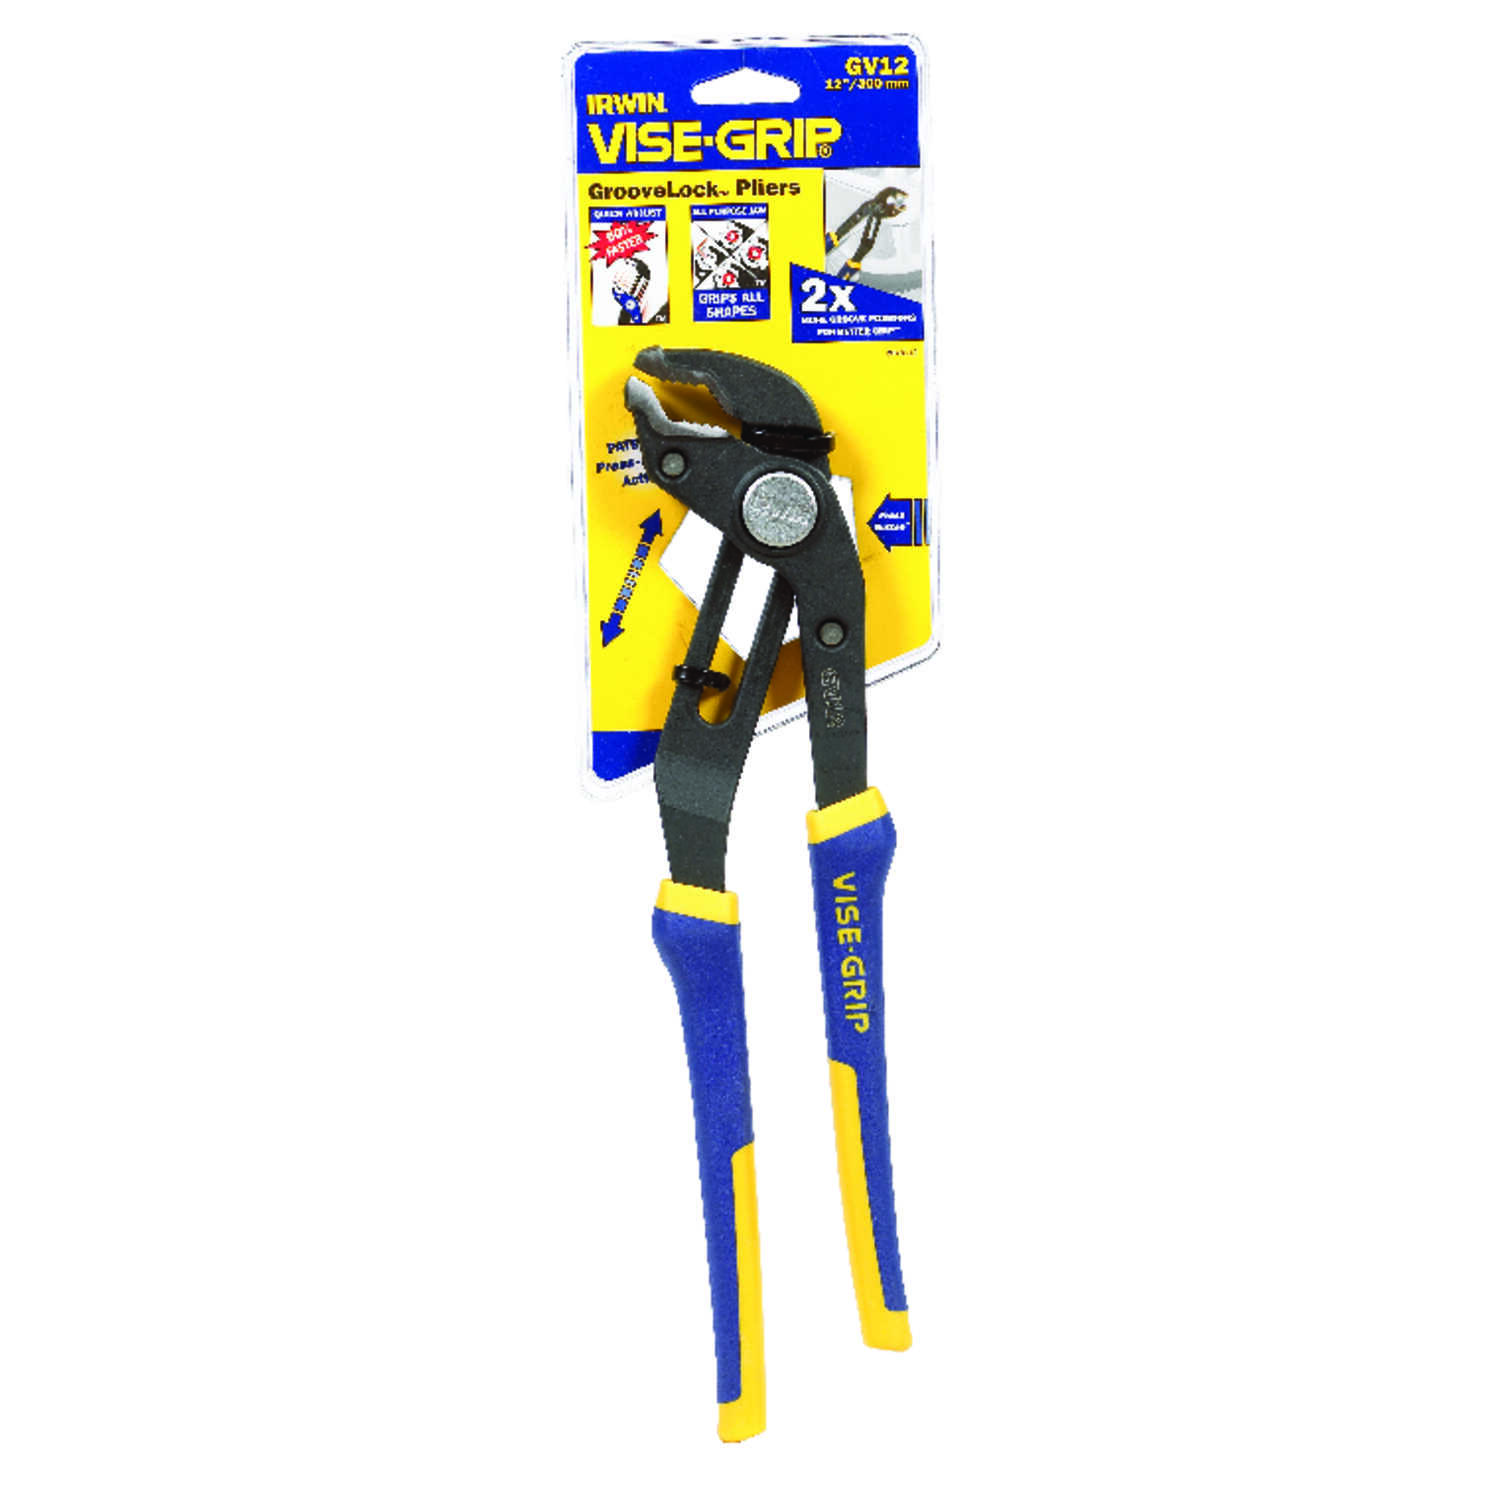 Irwin  Vise-Grip  12 in. Alloy Steel  Tongue and Groove Pliers  Blue/Yellow  1 pk